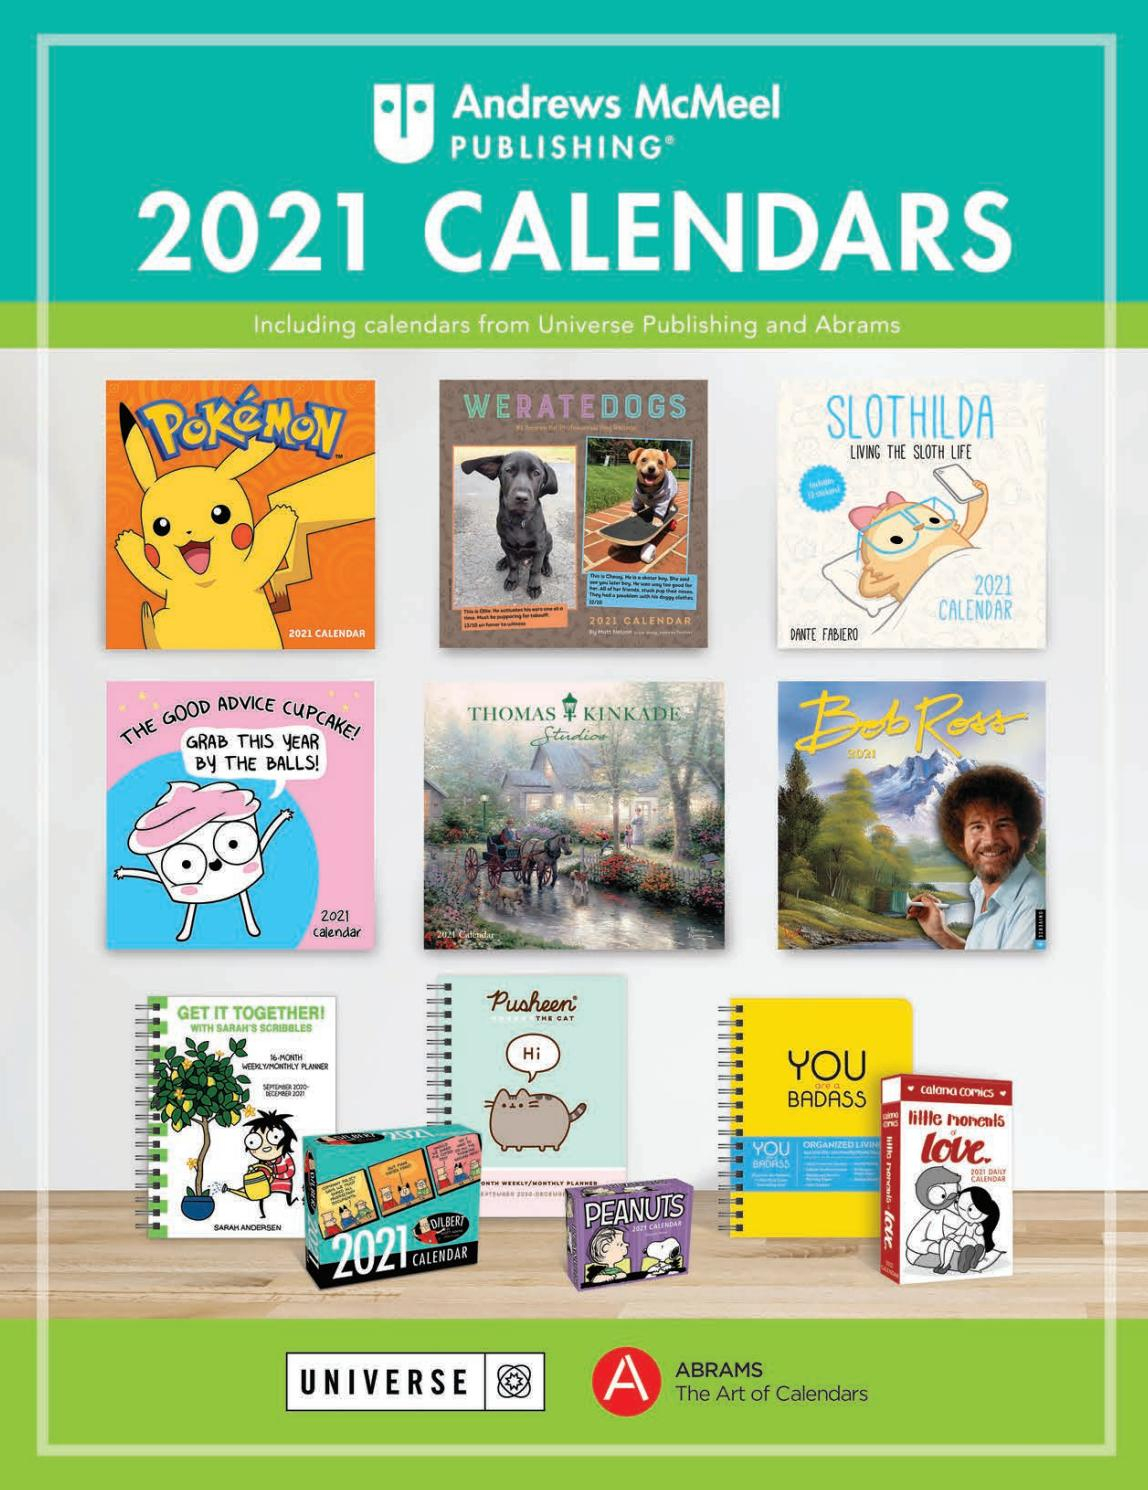 Andrews Mcmeel 2021 Calendar Catalogandrews Mcmeel Inside Mifflin County School Ddistrict Calendar 2021 2020